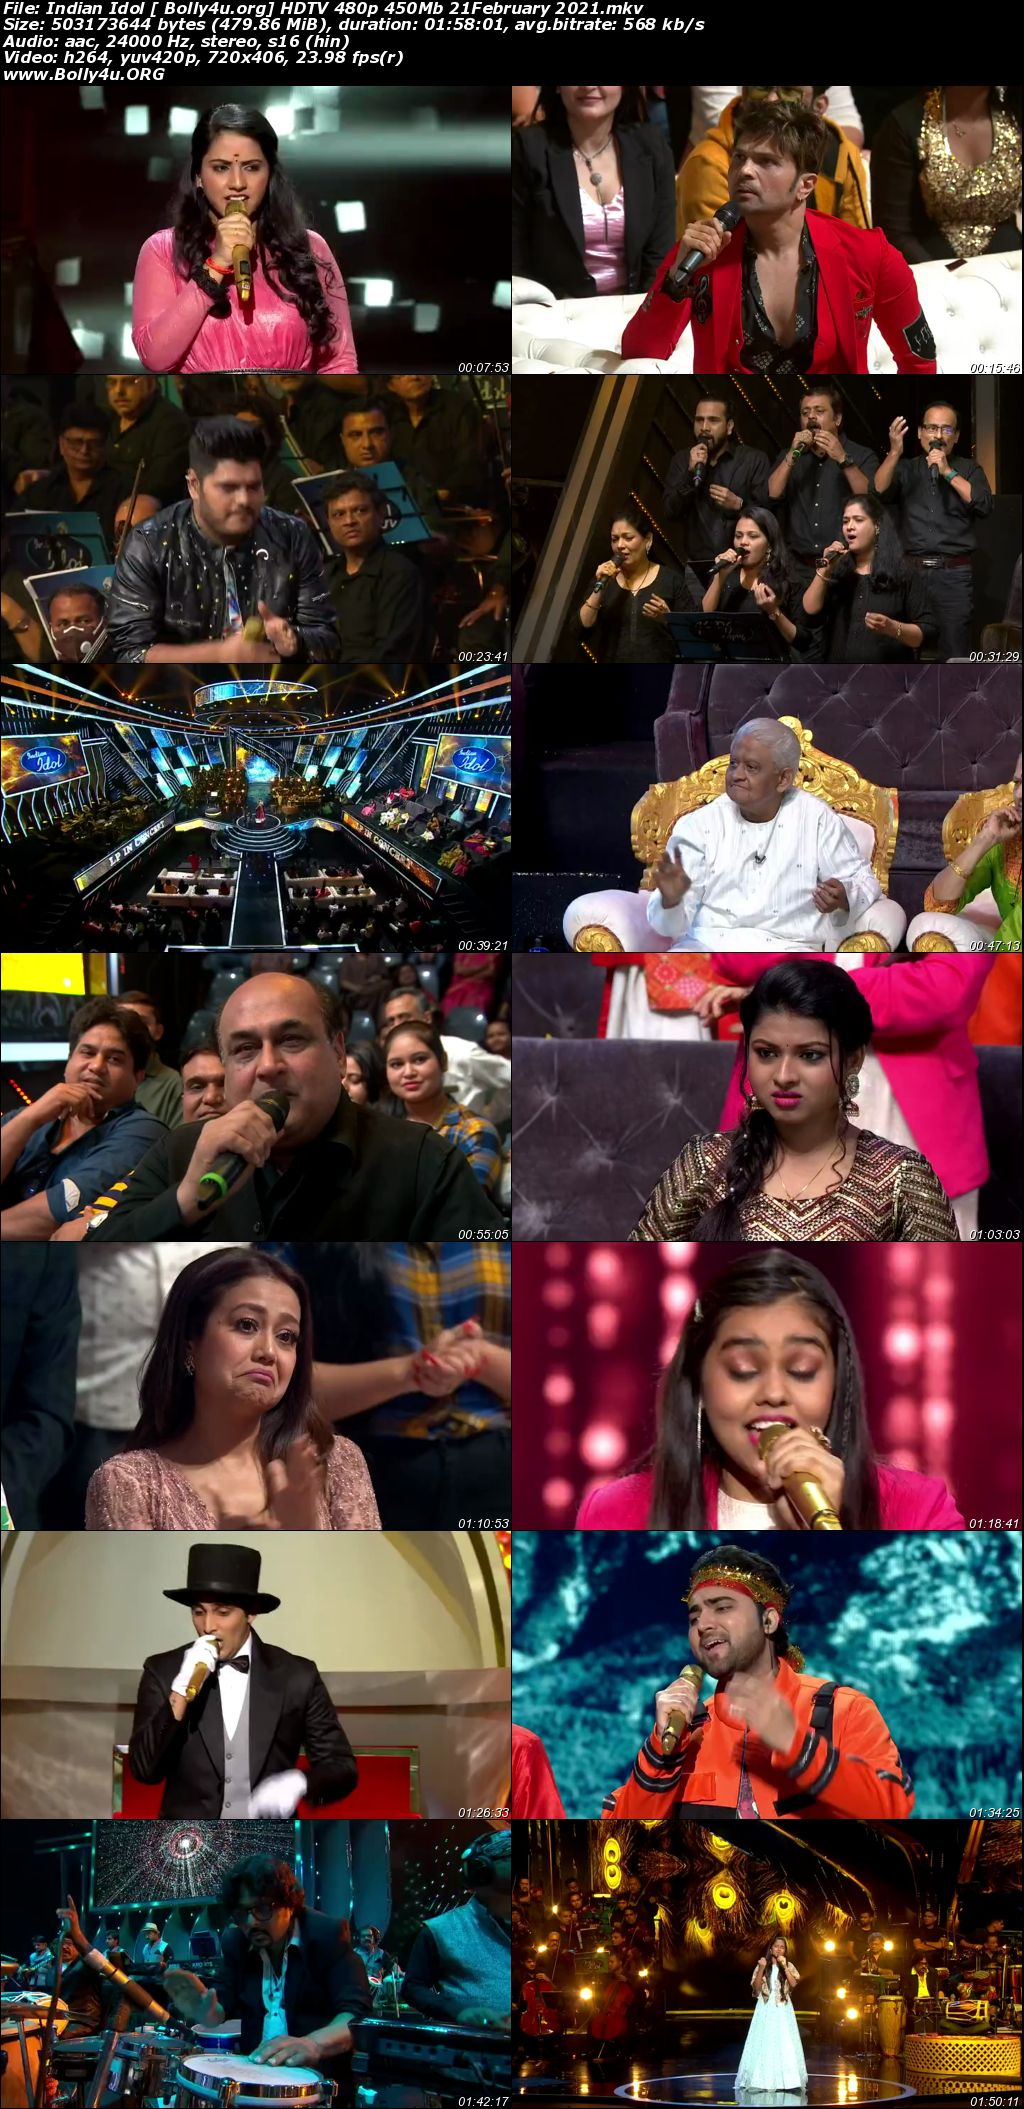 Indian Idol 2021 HDTV 480p 450Mb 21 February 2021 Download